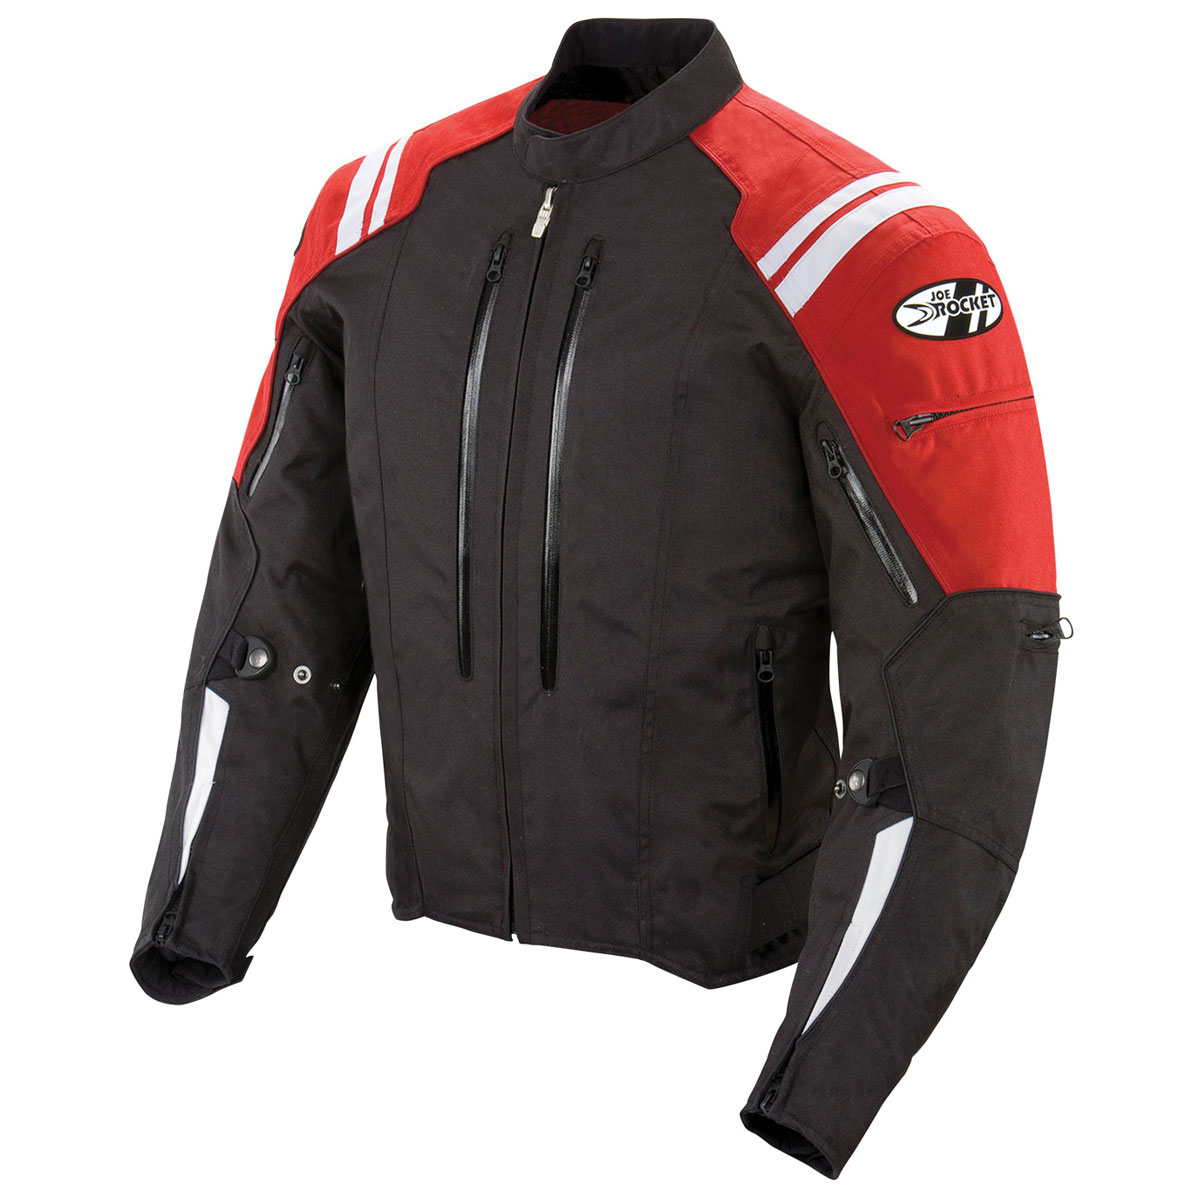 Joe Rocket Men's Atomic 4.0 Waterproof Red/Black Jacket